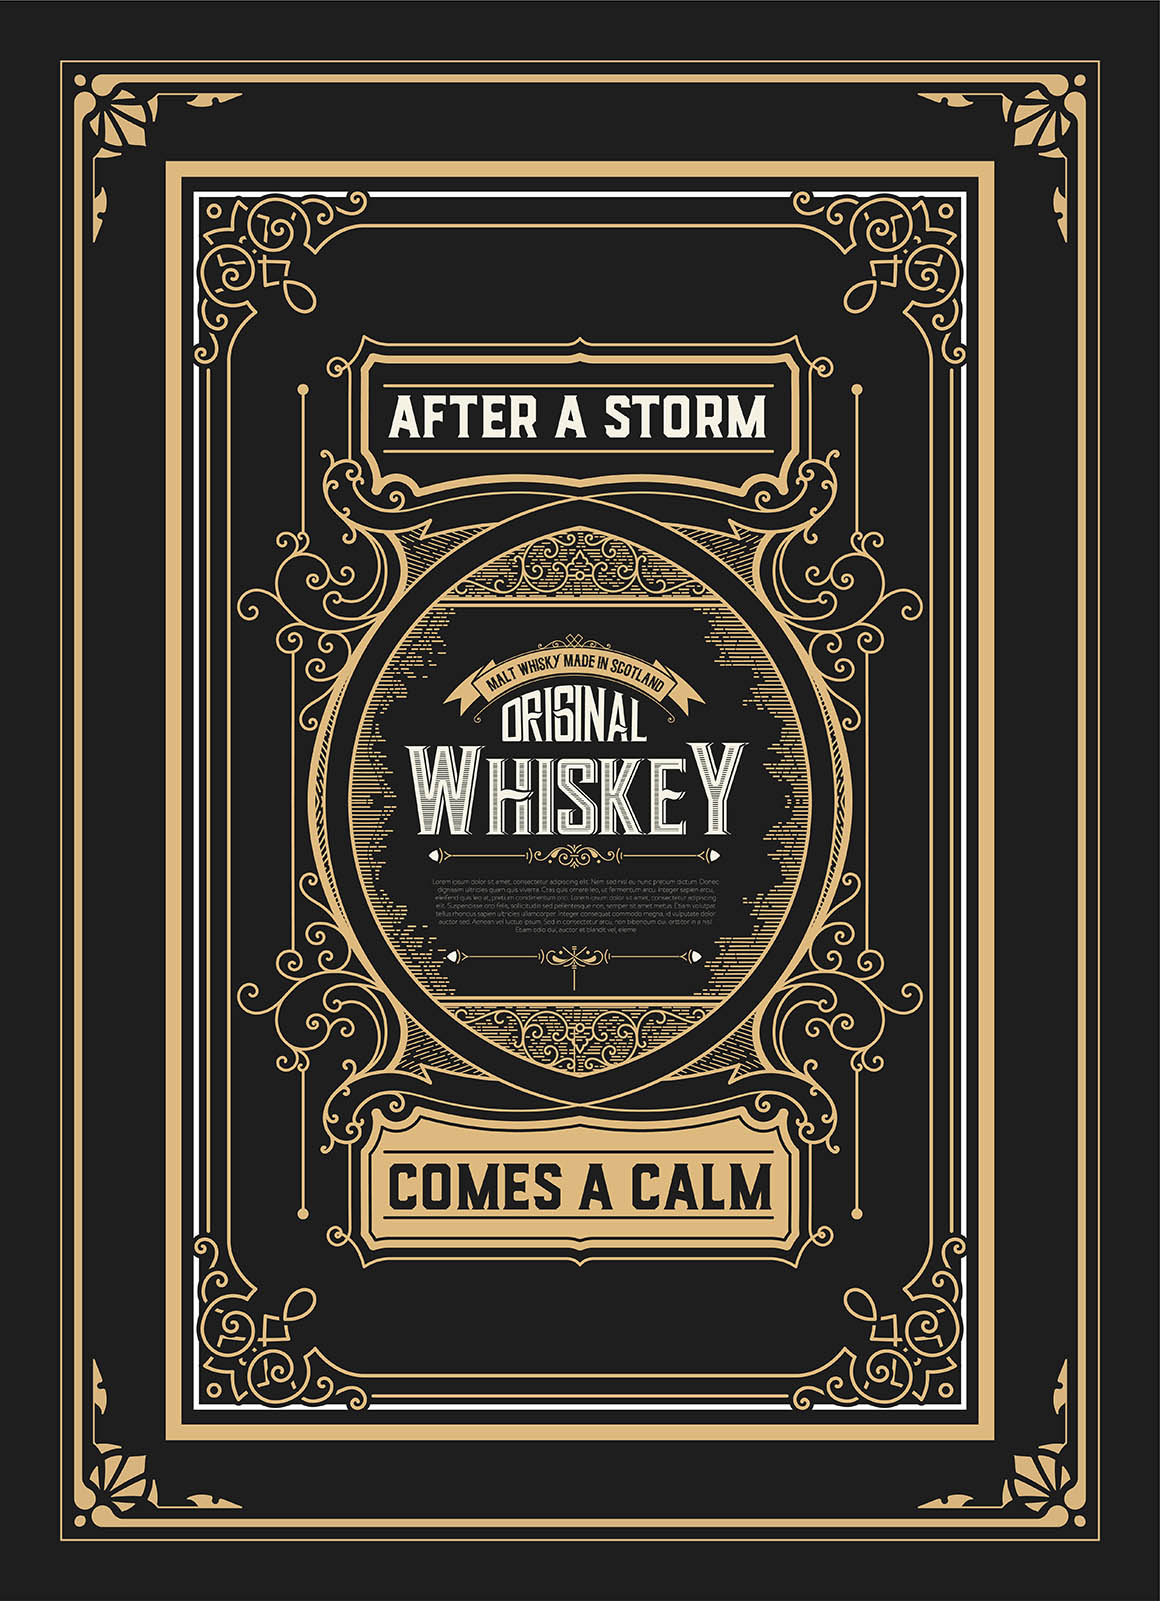 Old Whiskey label with vintage frames